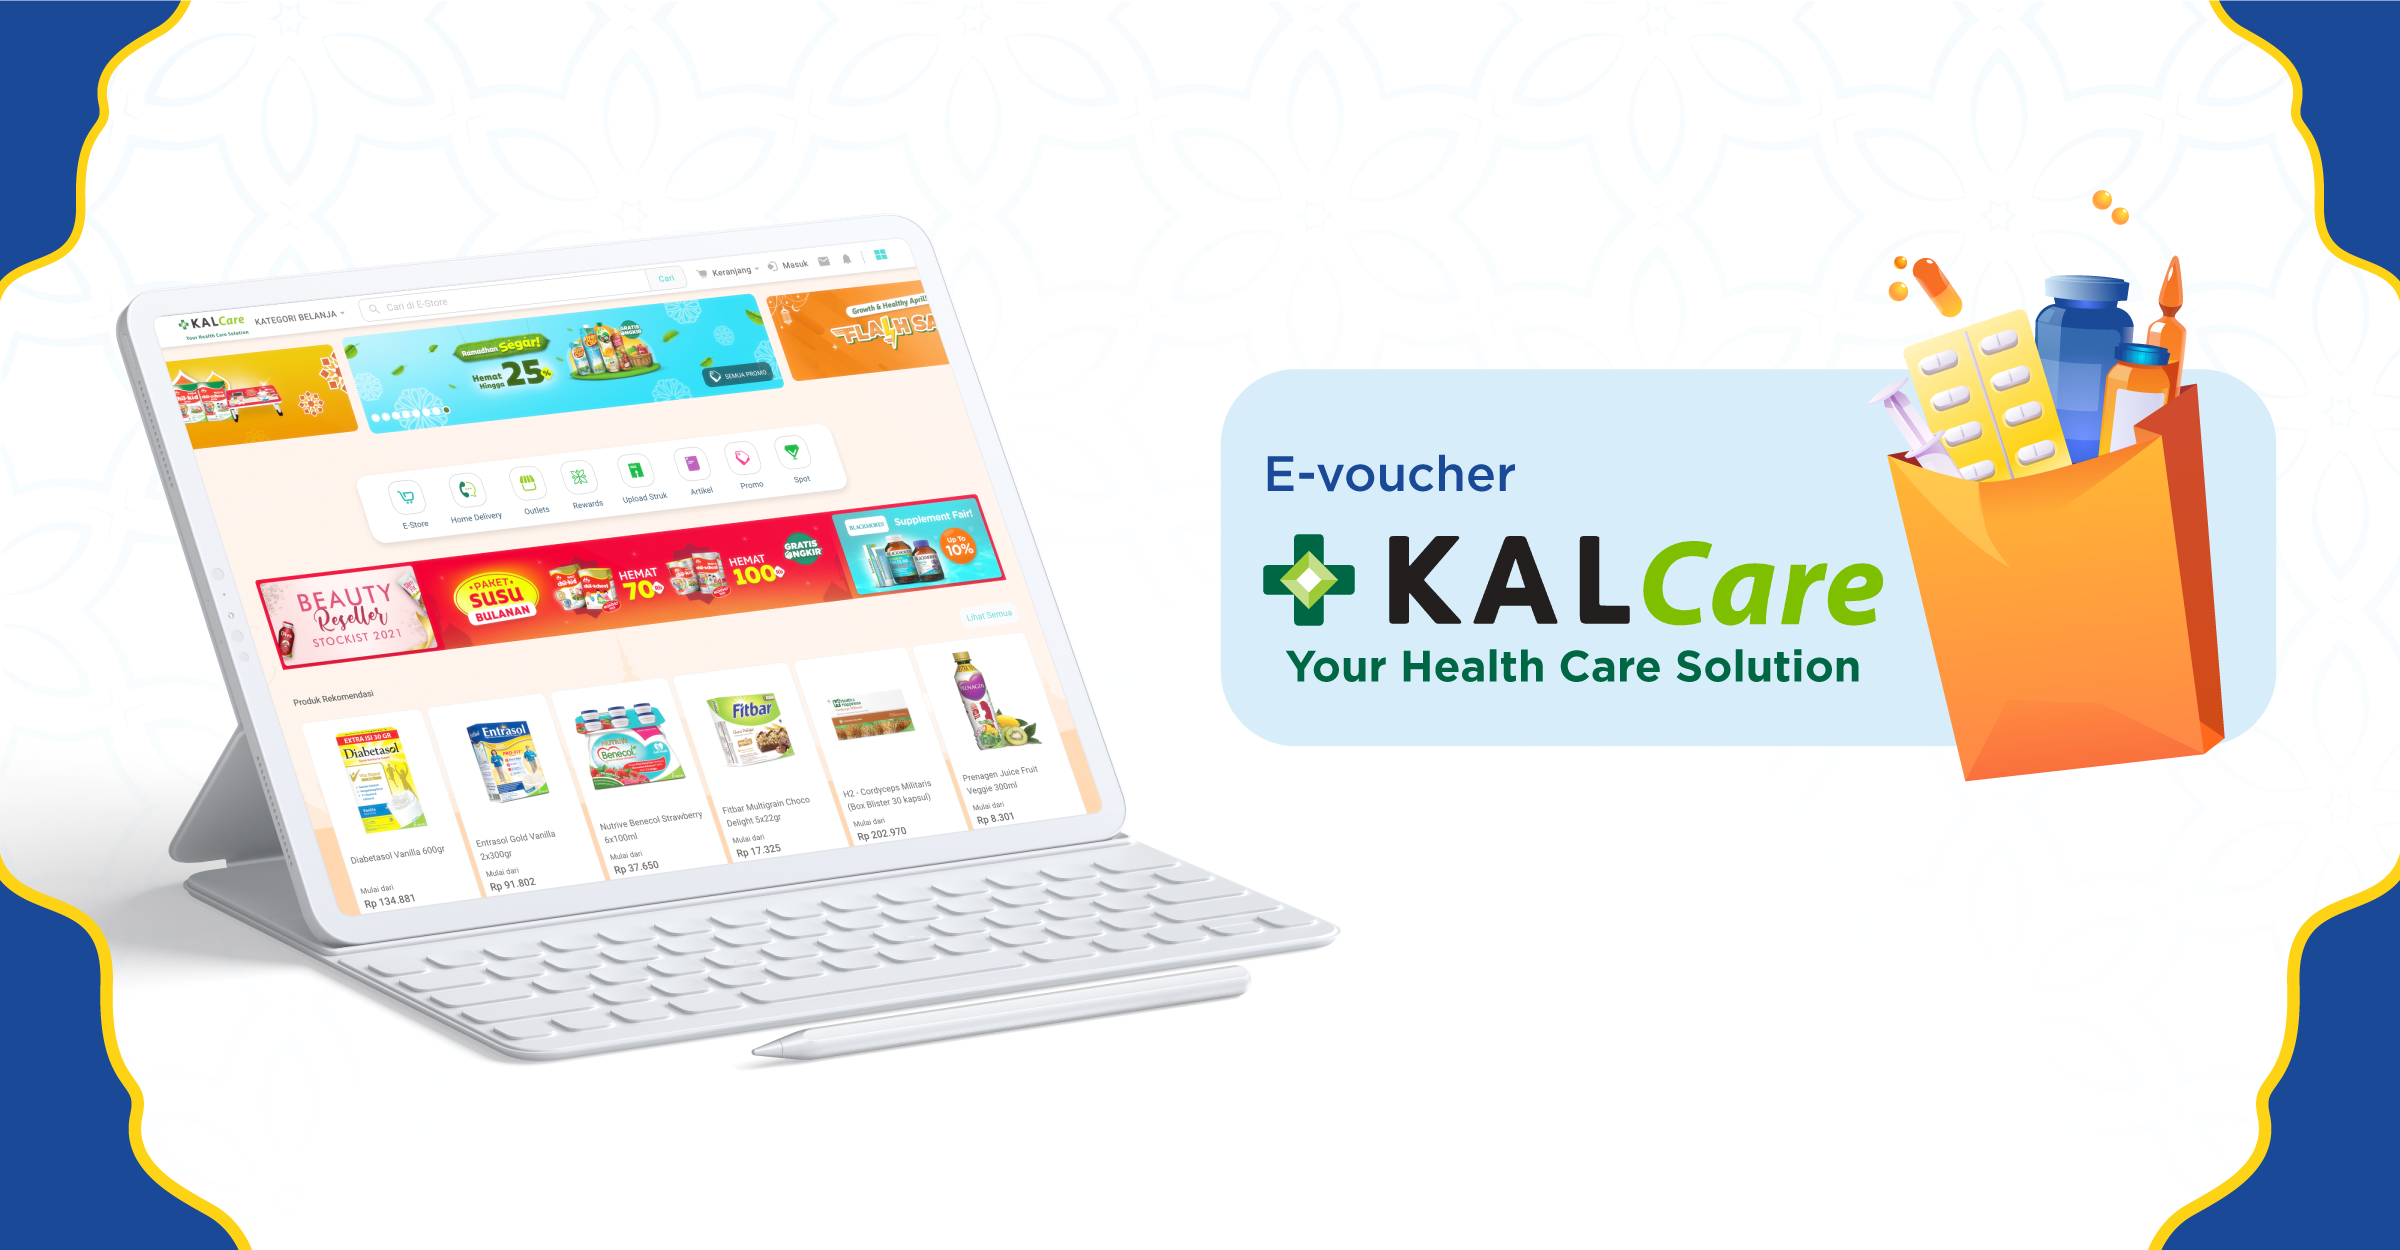 Kalcare evoucher to shop for health supplements